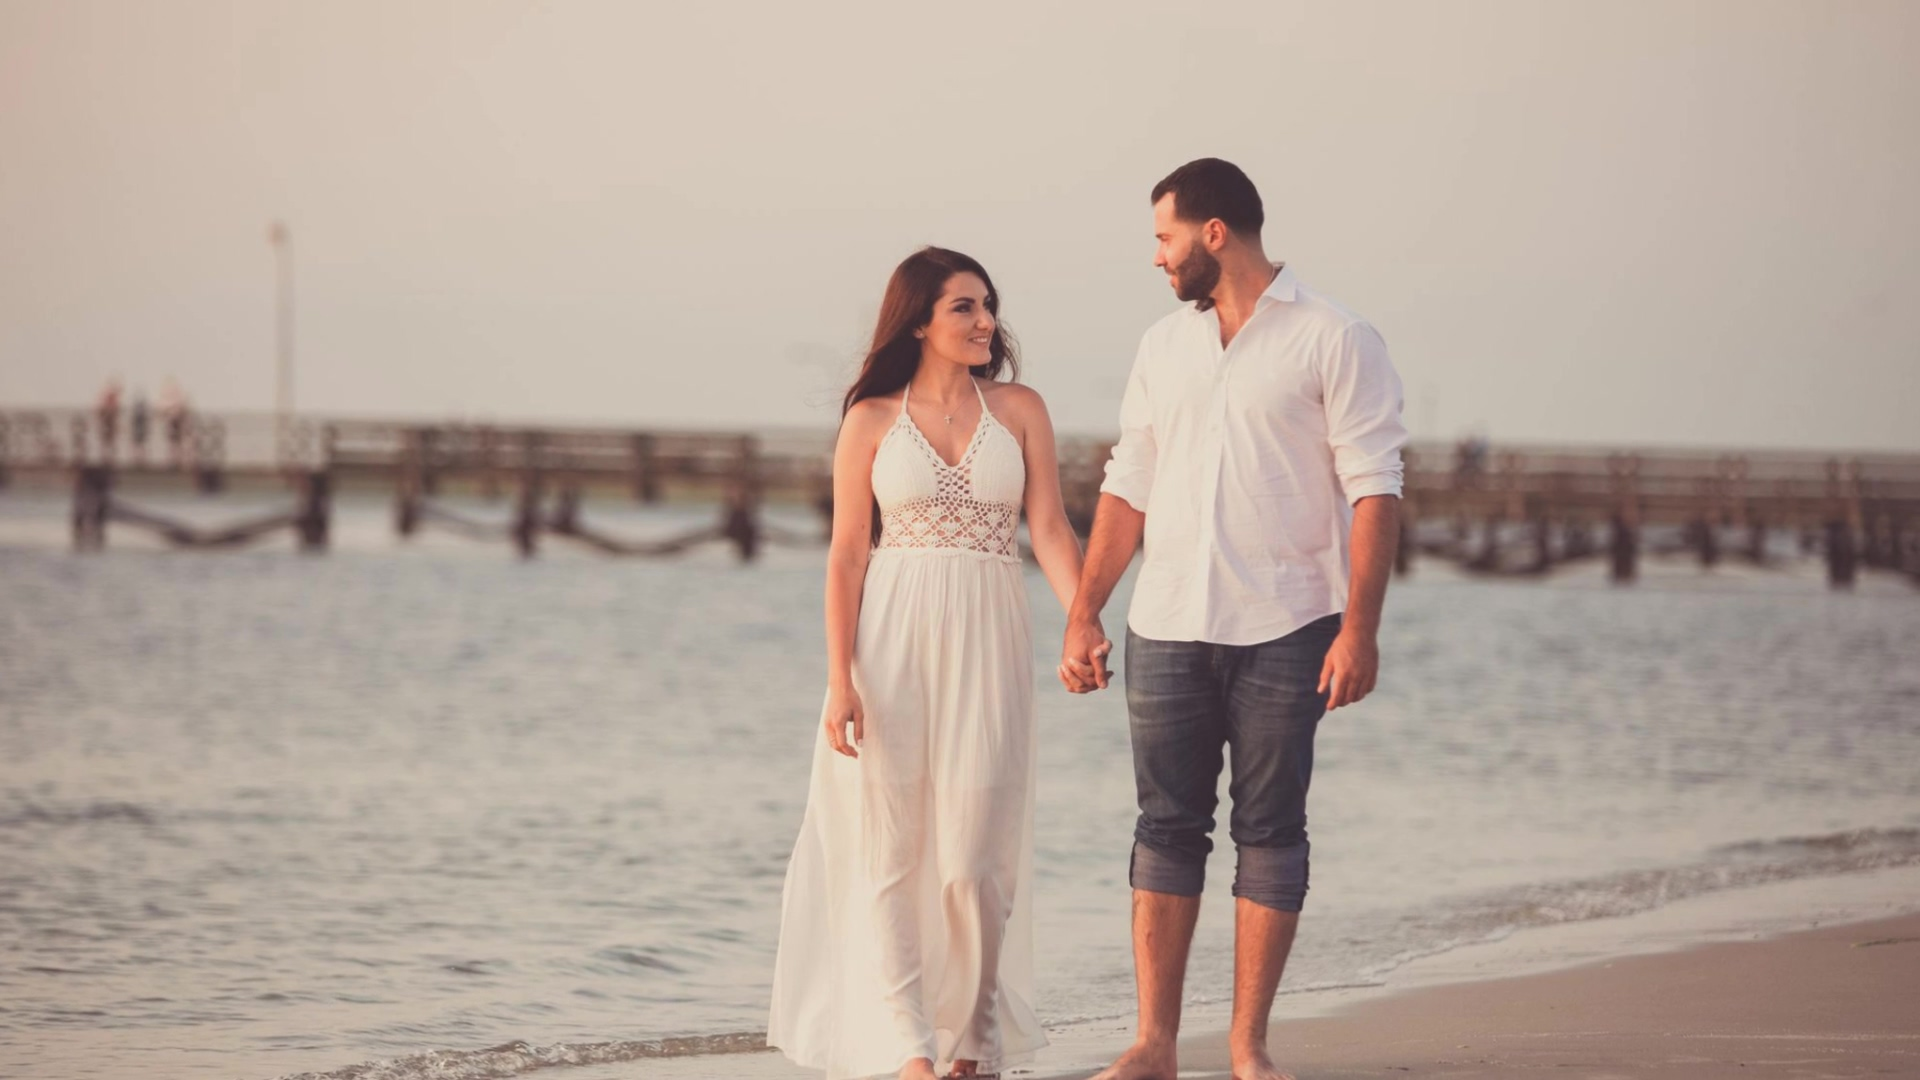 2020_Jones_Beach_Engagement_Photos_1080p